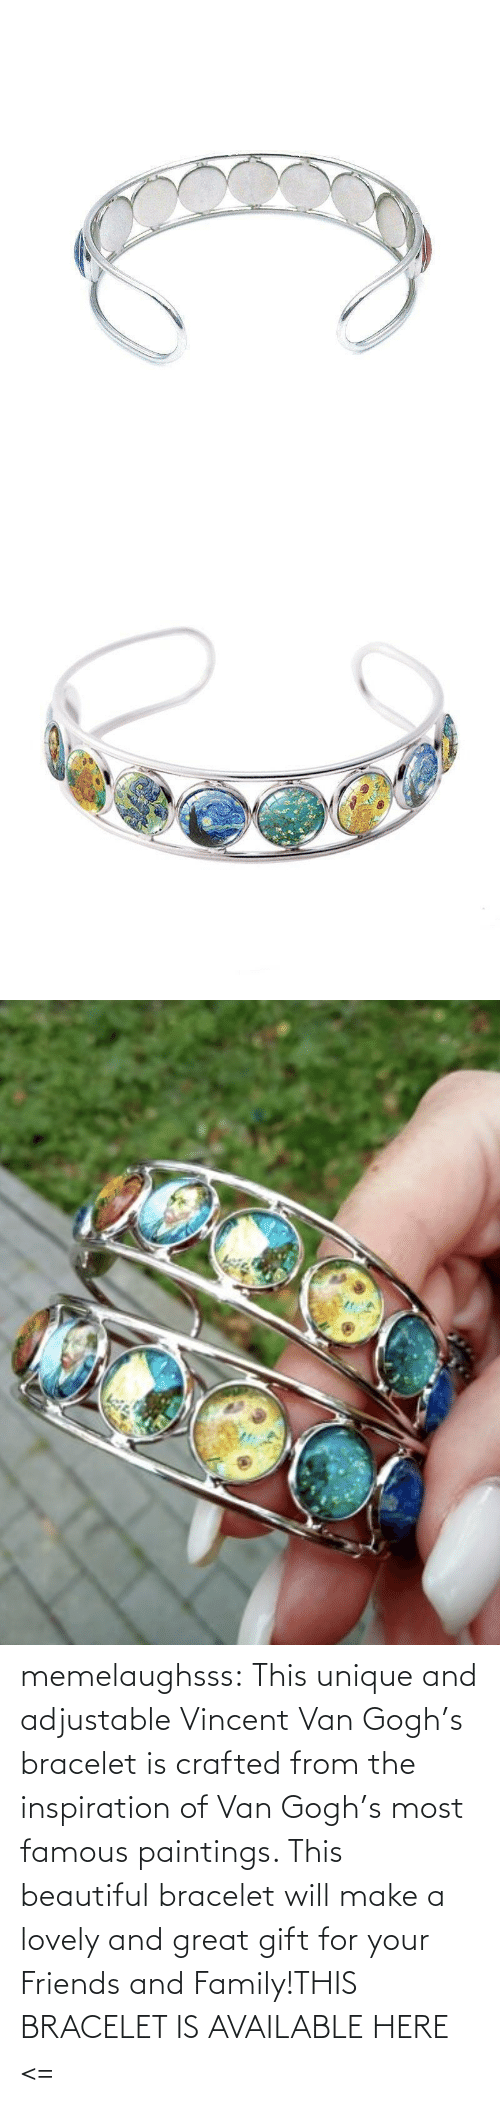 Paintings: memelaughsss:  This unique and adjustable Vincent Van Gogh's bracelet is crafted from the inspiration of Van Gogh's most famous paintings. This beautiful bracelet will make a lovely and great gift for your Friends and Family!THIS BRACELET IS AVAILABLE HERE <=